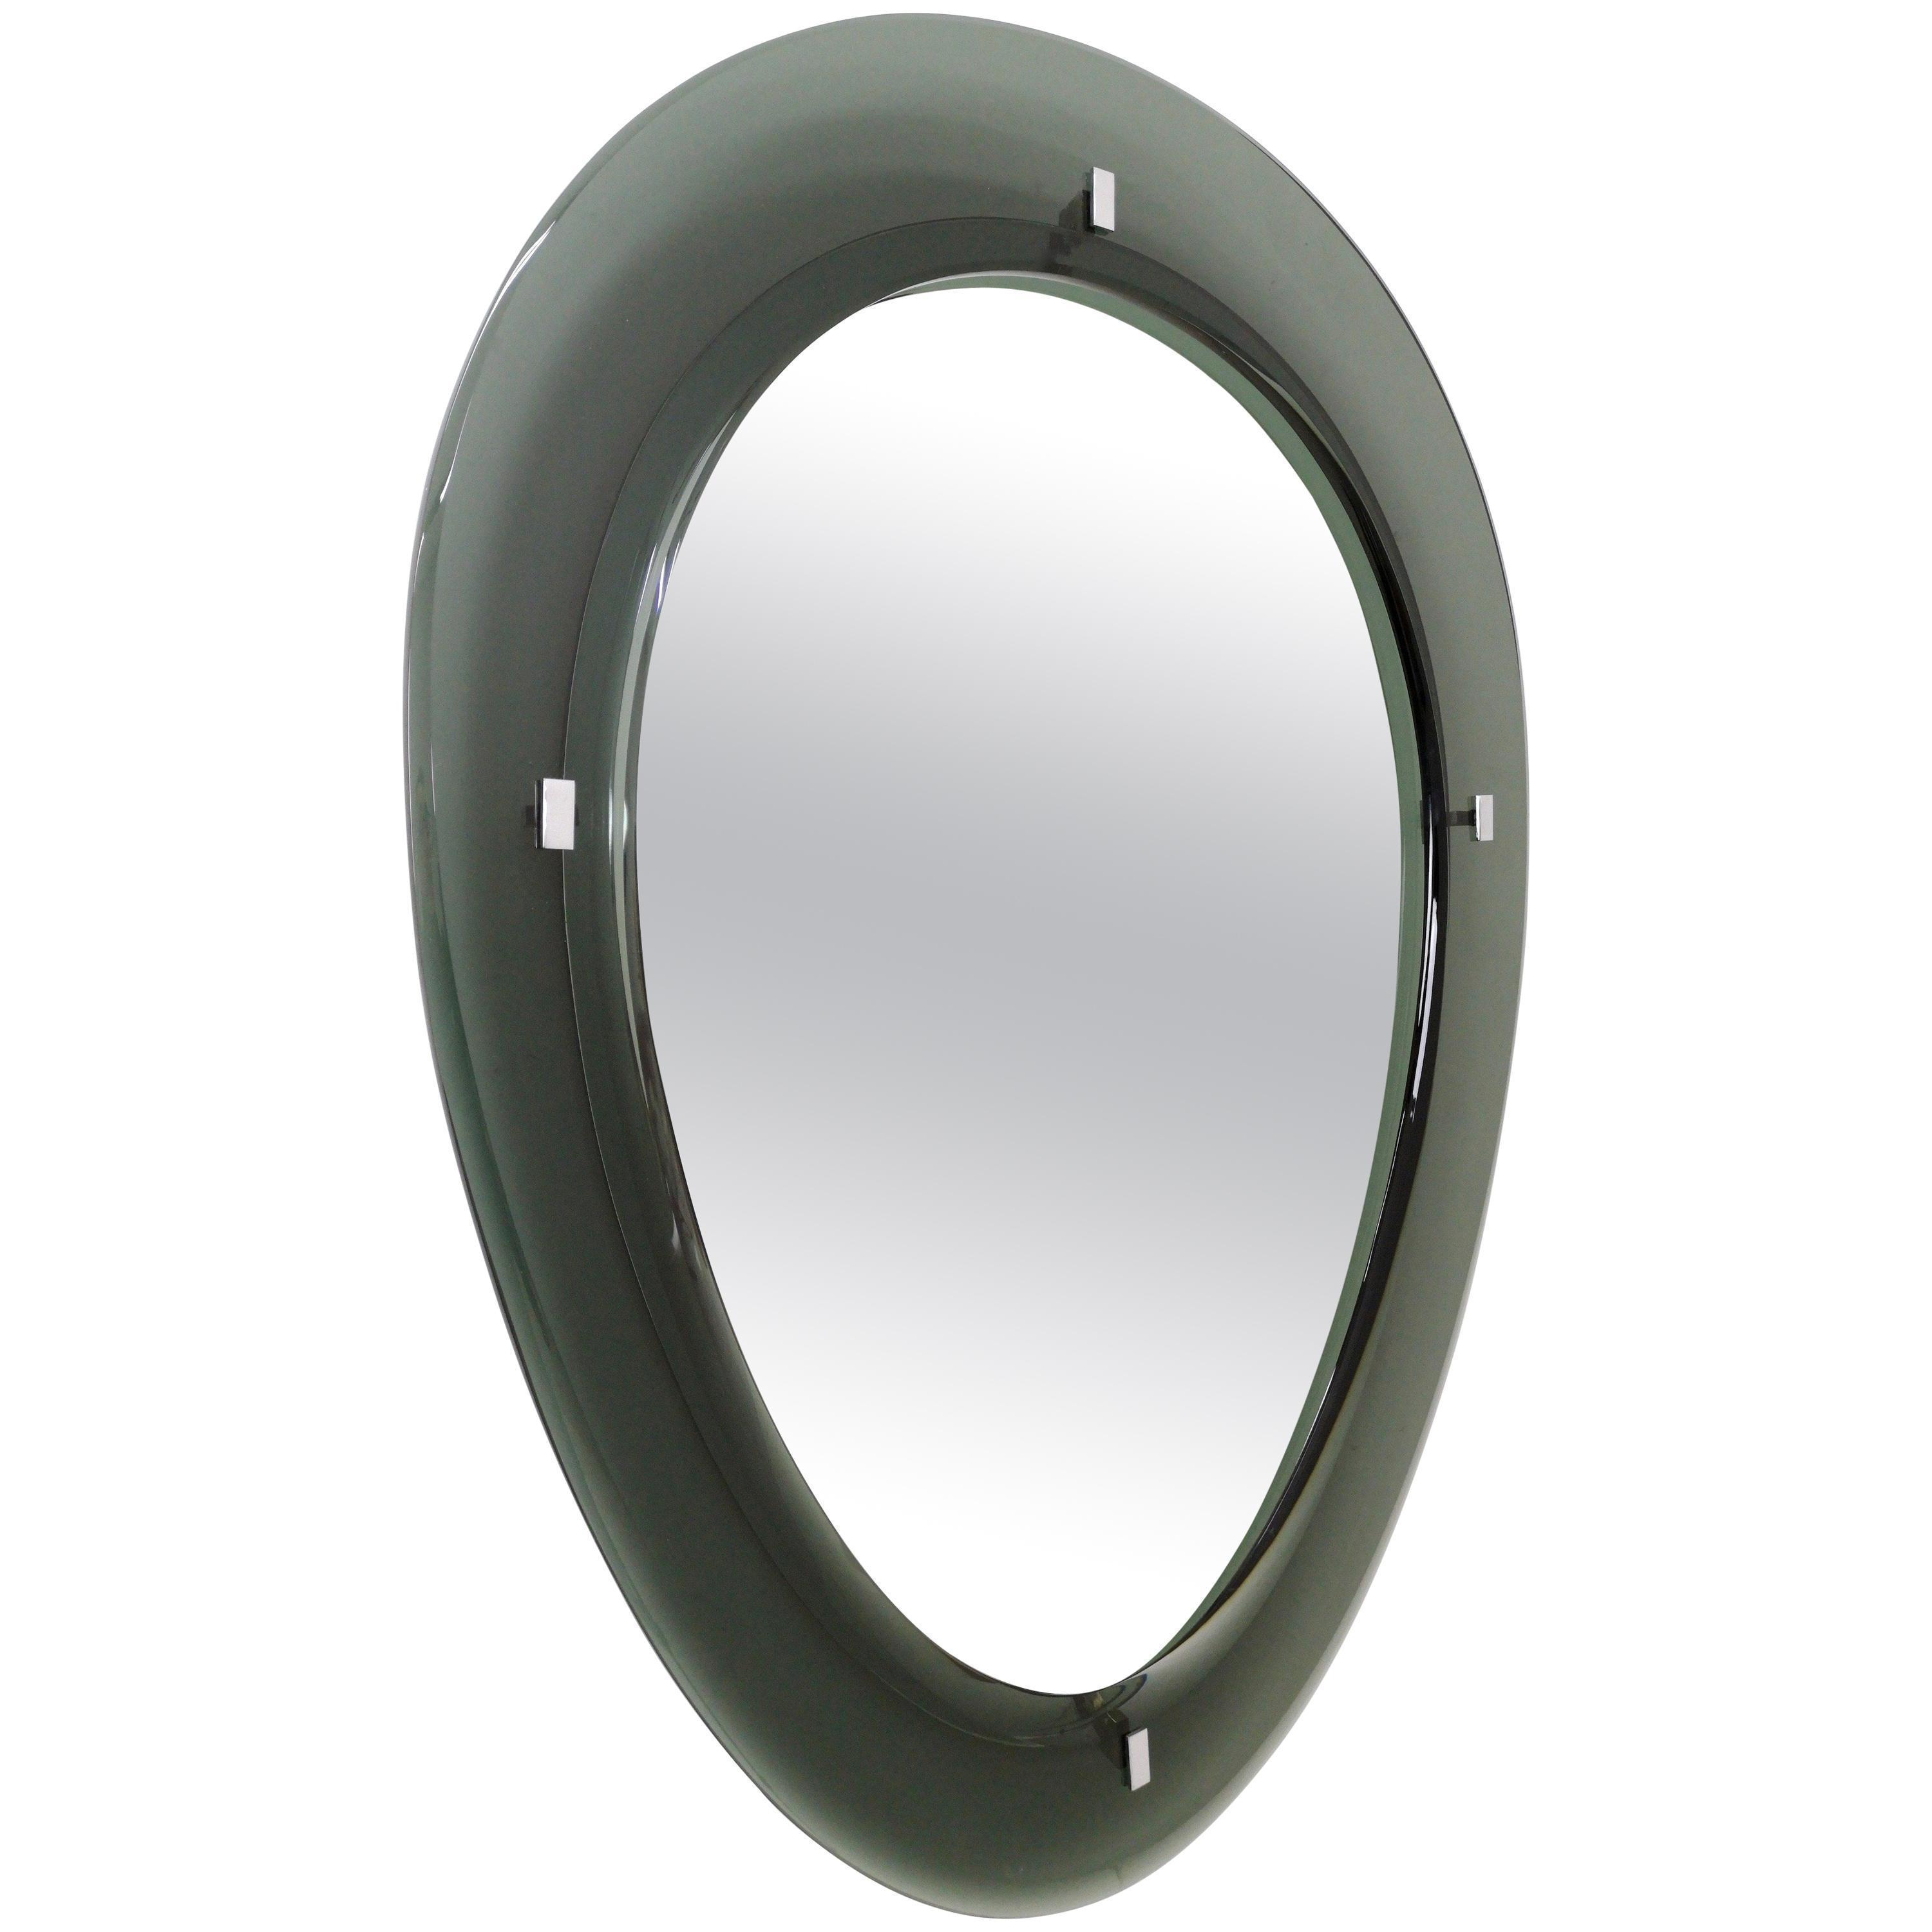 [%[On Hold] Oval Shaped Wall Mirror With Beveled Glass Framefontana Arte,  Italy, 1950S In Preferred Oval Shaped Wall Mirrors|Oval Shaped Wall Mirrors With Best And Newest [On Hold] Oval Shaped Wall Mirror With Beveled Glass Framefontana Arte,  Italy, 1950S|Widely Used Oval Shaped Wall Mirrors Throughout [On Hold] Oval Shaped Wall Mirror With Beveled Glass Framefontana Arte,  Italy, 1950S|Recent [On Hold] Oval Shaped Wall Mirror With Beveled Glass Framefontana Arte,  Italy, 1950S Within Oval Shaped Wall Mirrors%] (View 1 of 20)